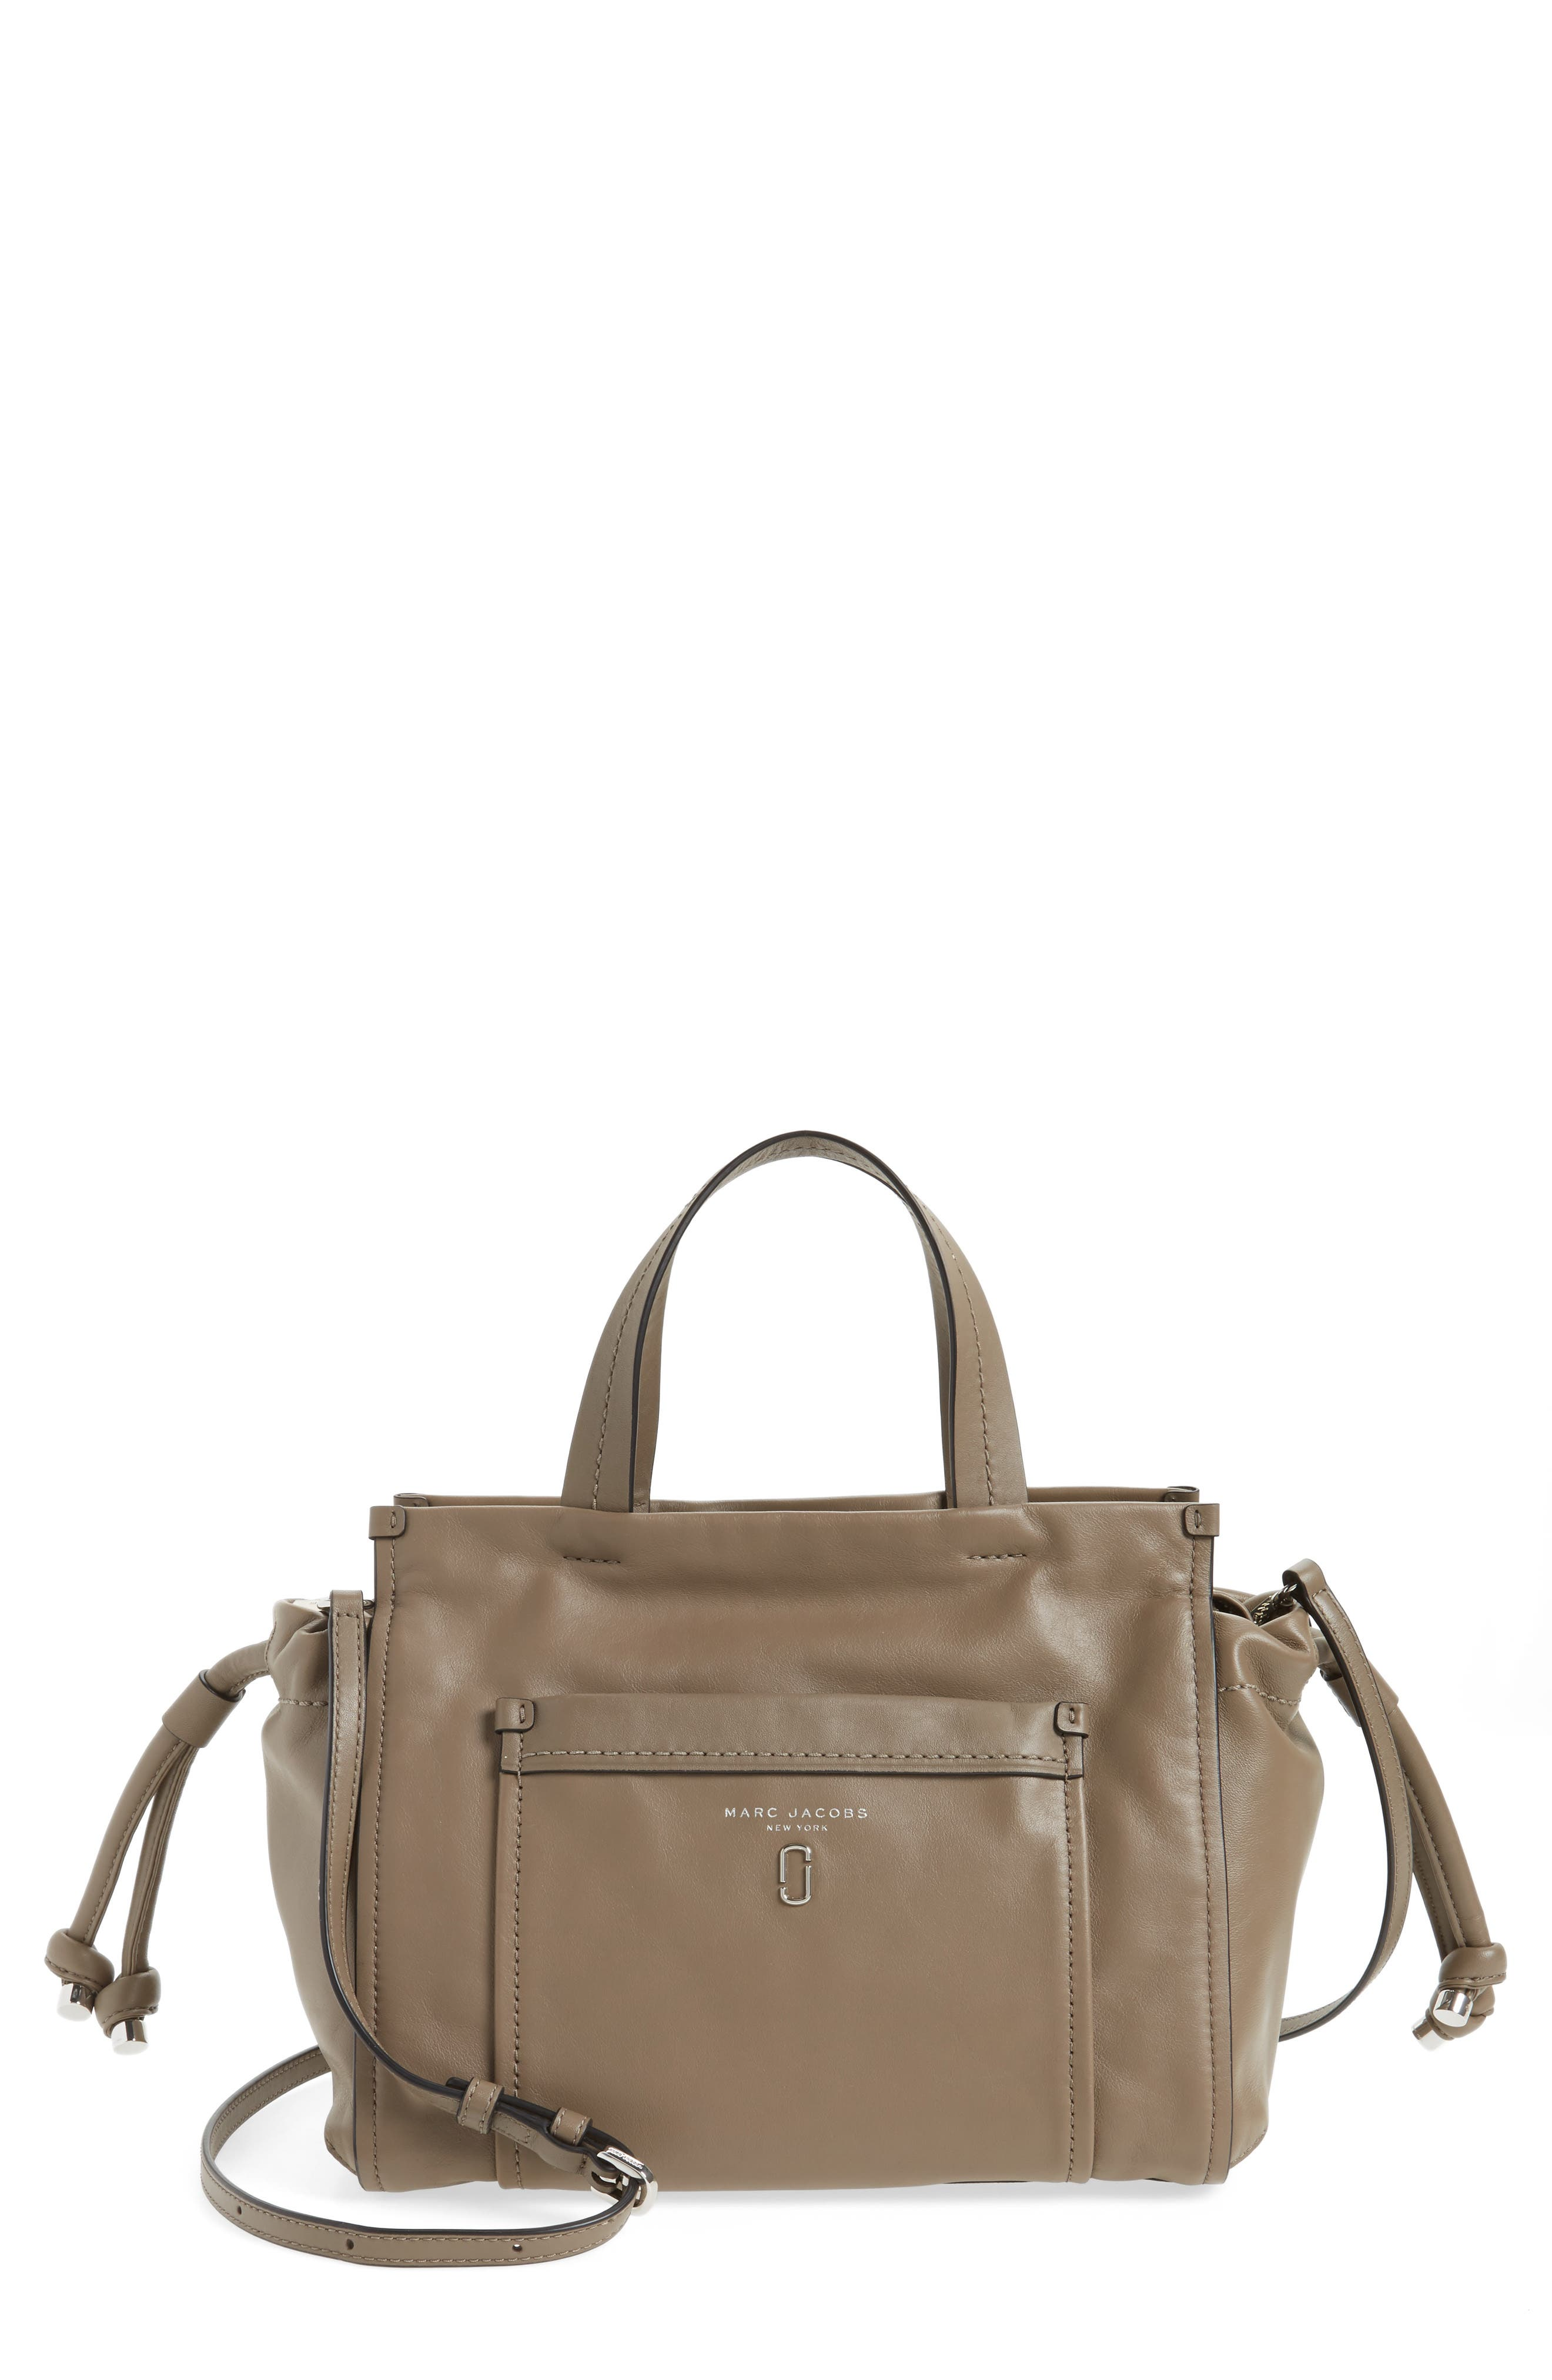 MARC JACOBS Tied Up Leather Shoulder/Crossbody Tote